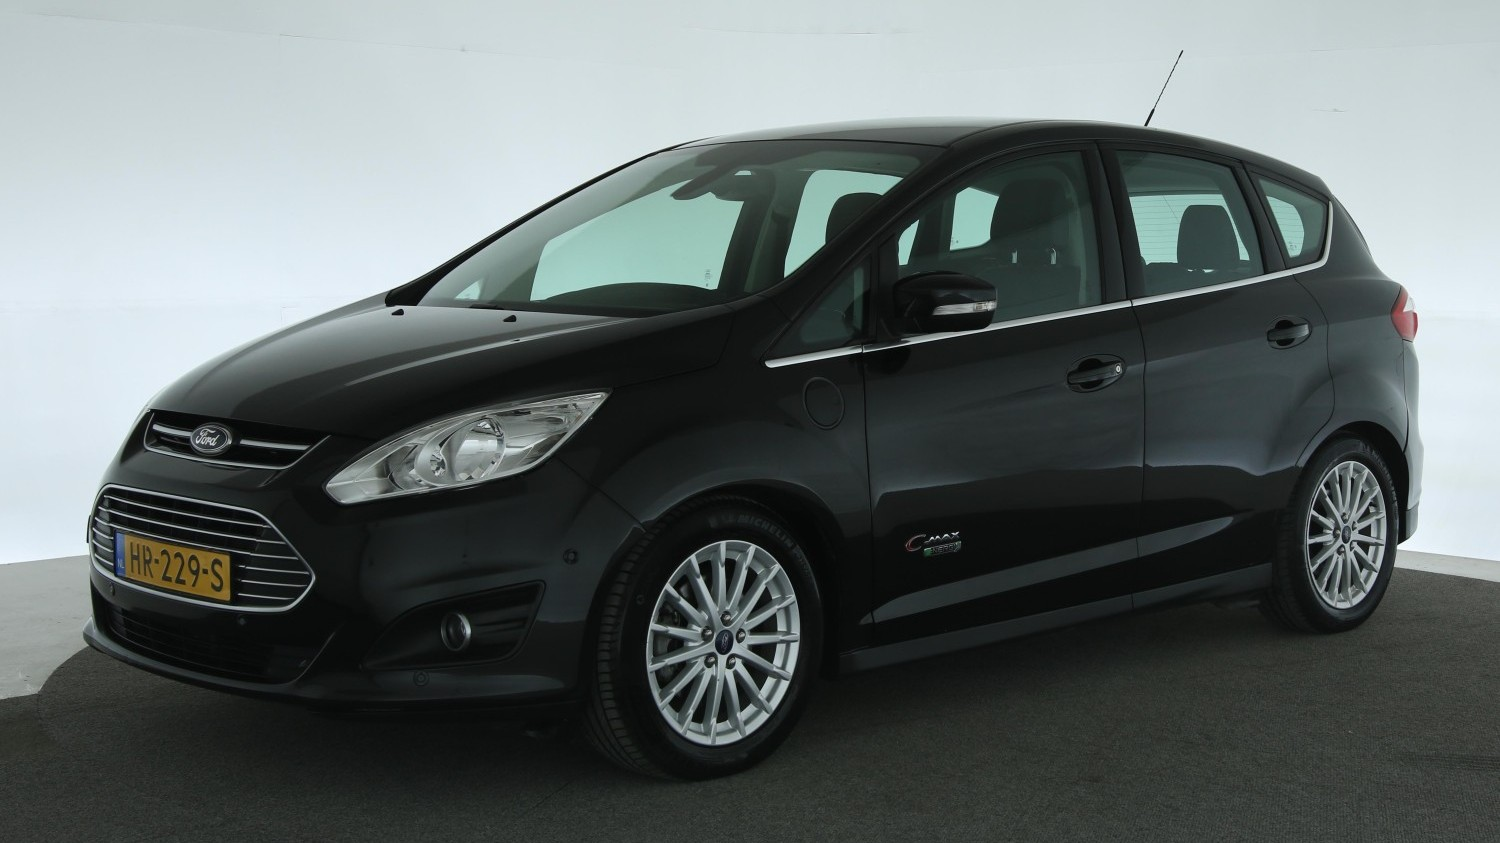 Ford C-Max MPV 2015 HR-229-S 1